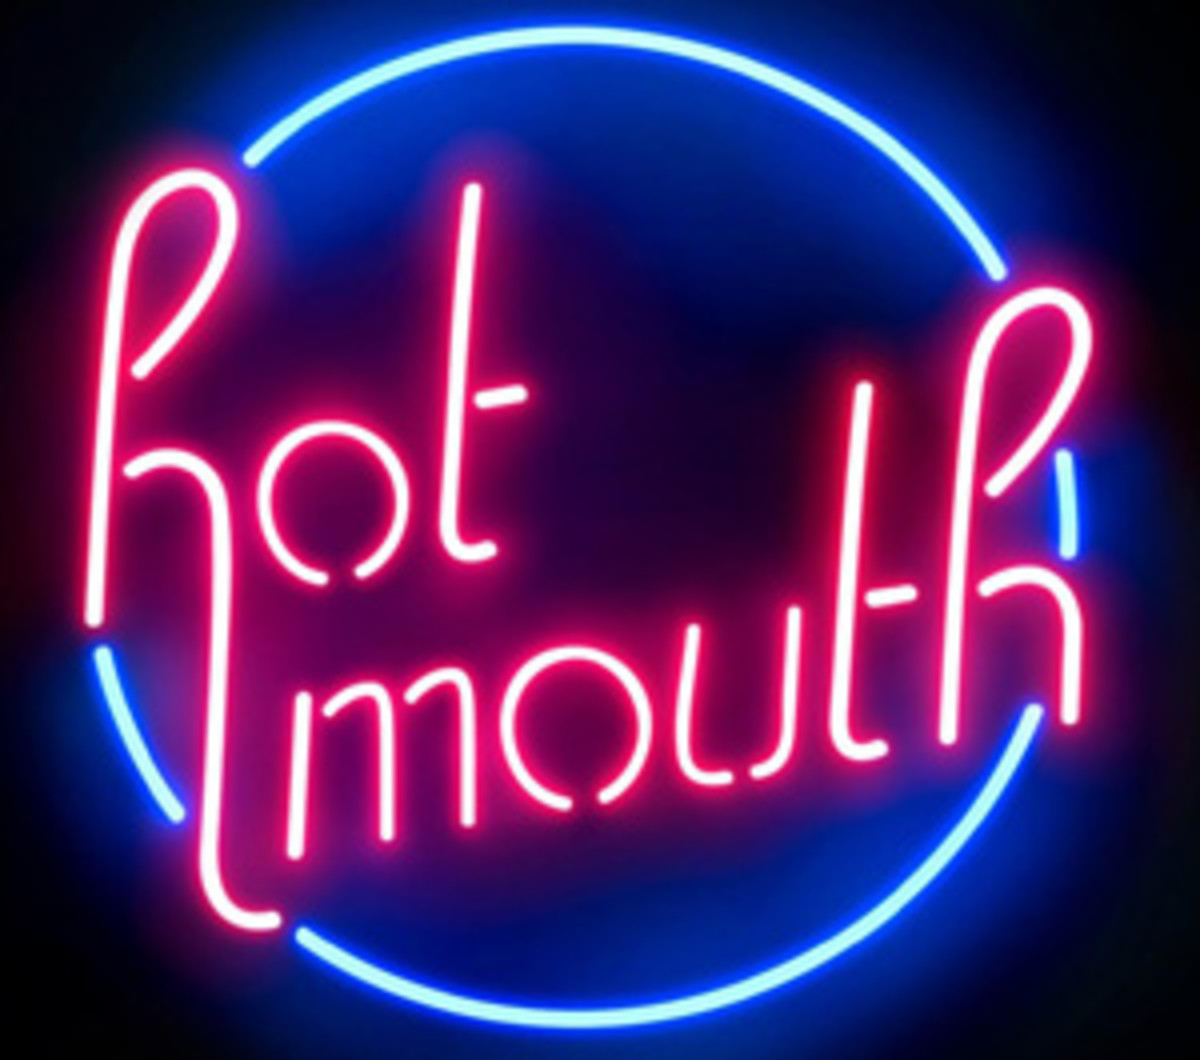 hot.mouth.sign